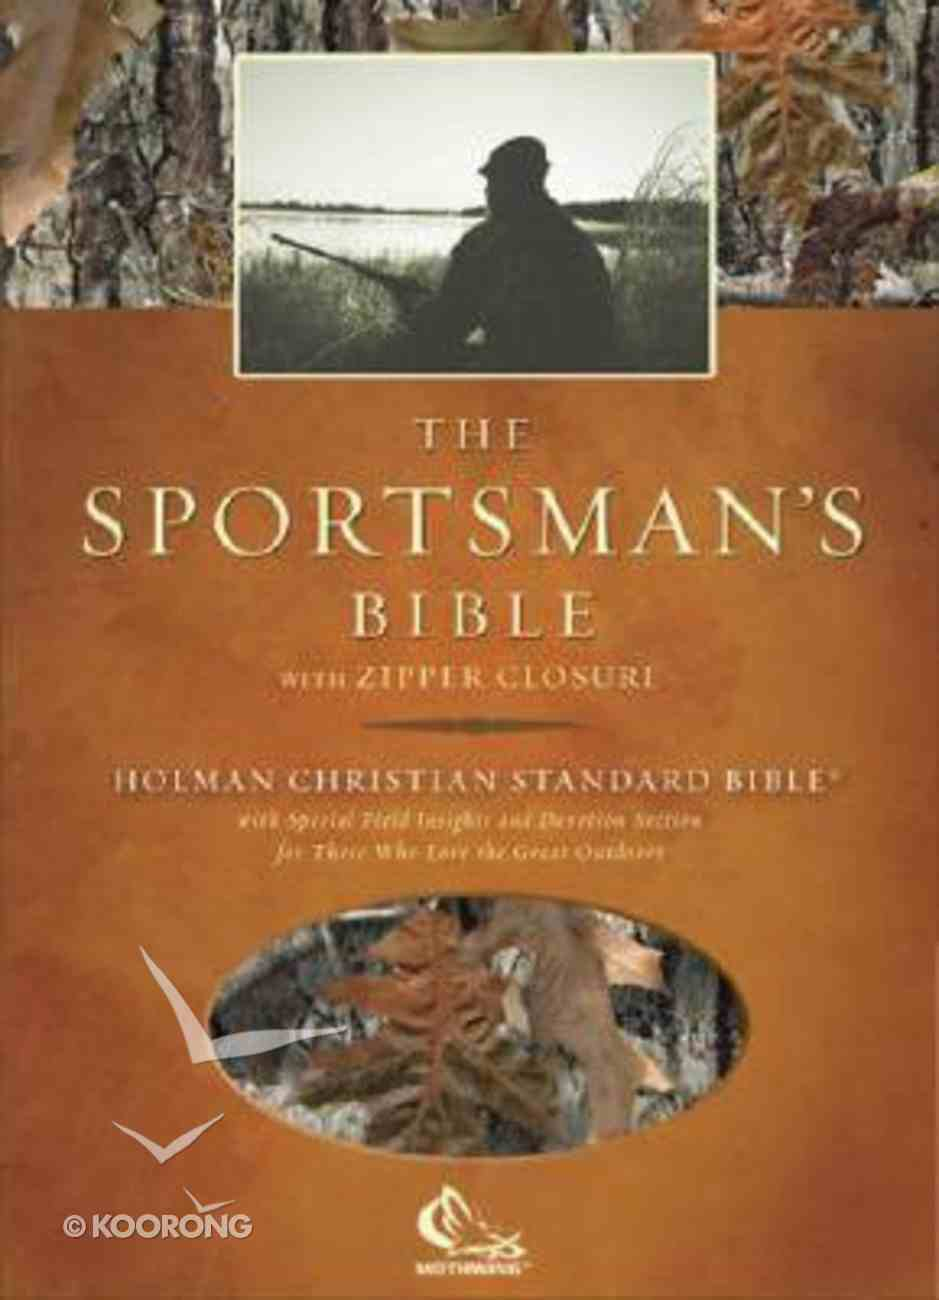 HCSB Sportsman's Bible Camouflage With Zip Bonded Leather